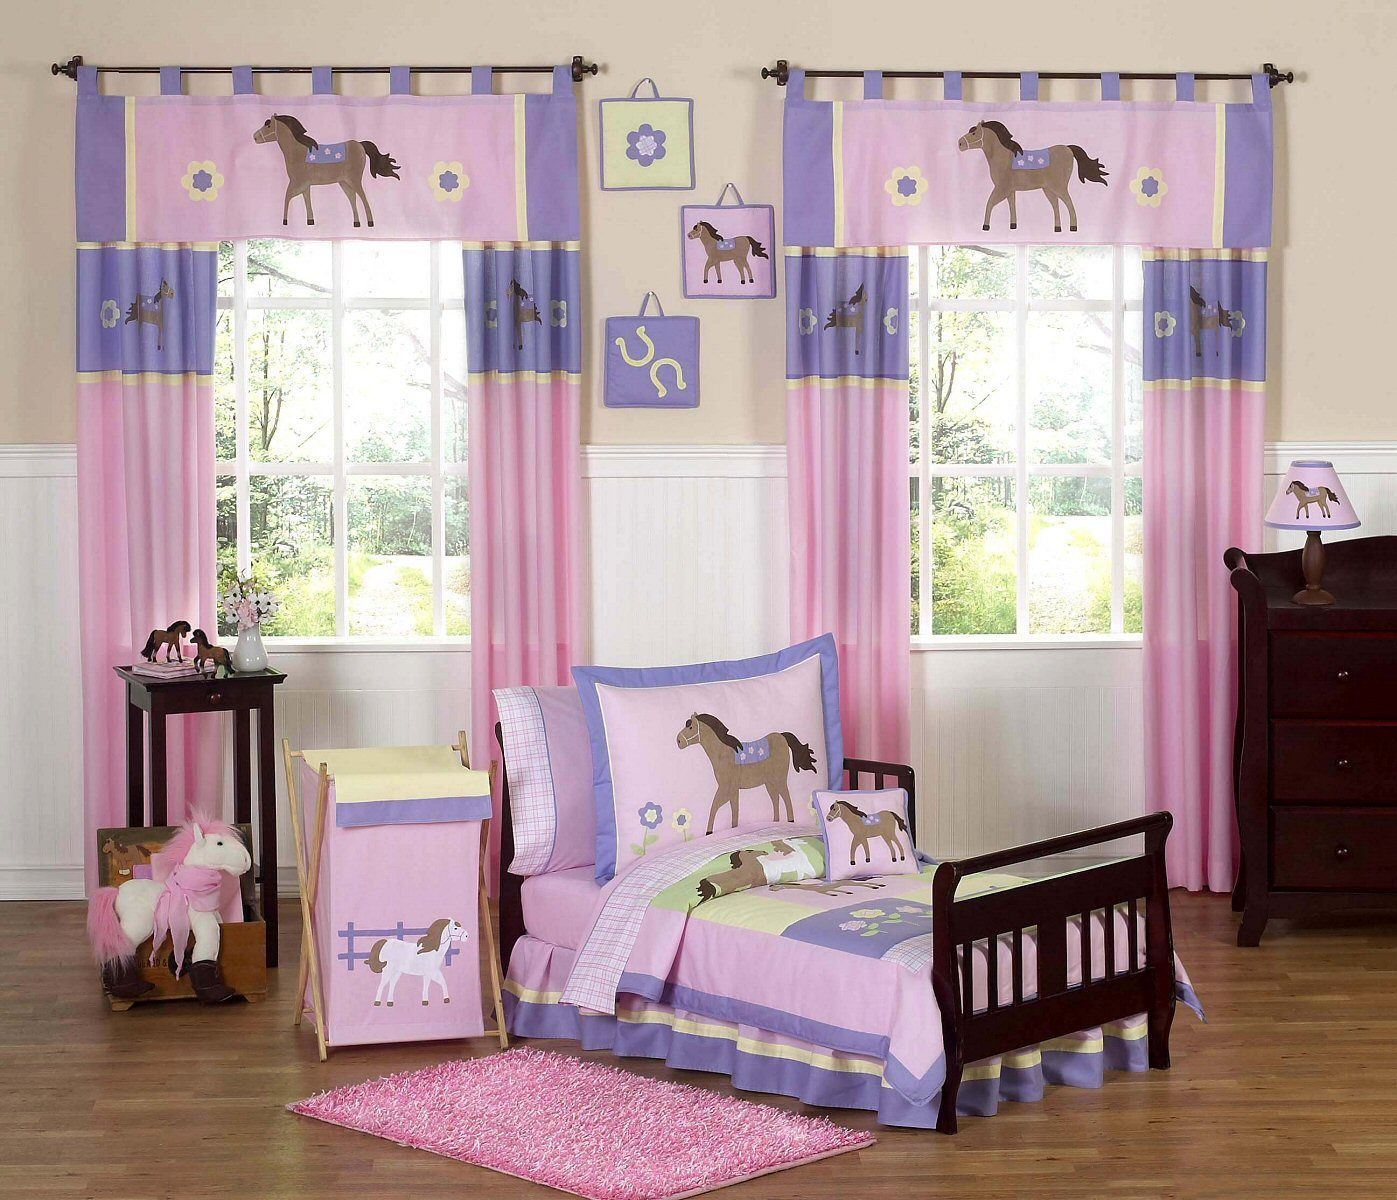 Pink Pony Horse Comforter Toddler Bedding Set #kidsroomstore Awesome Toddler Bedroom Set 2018